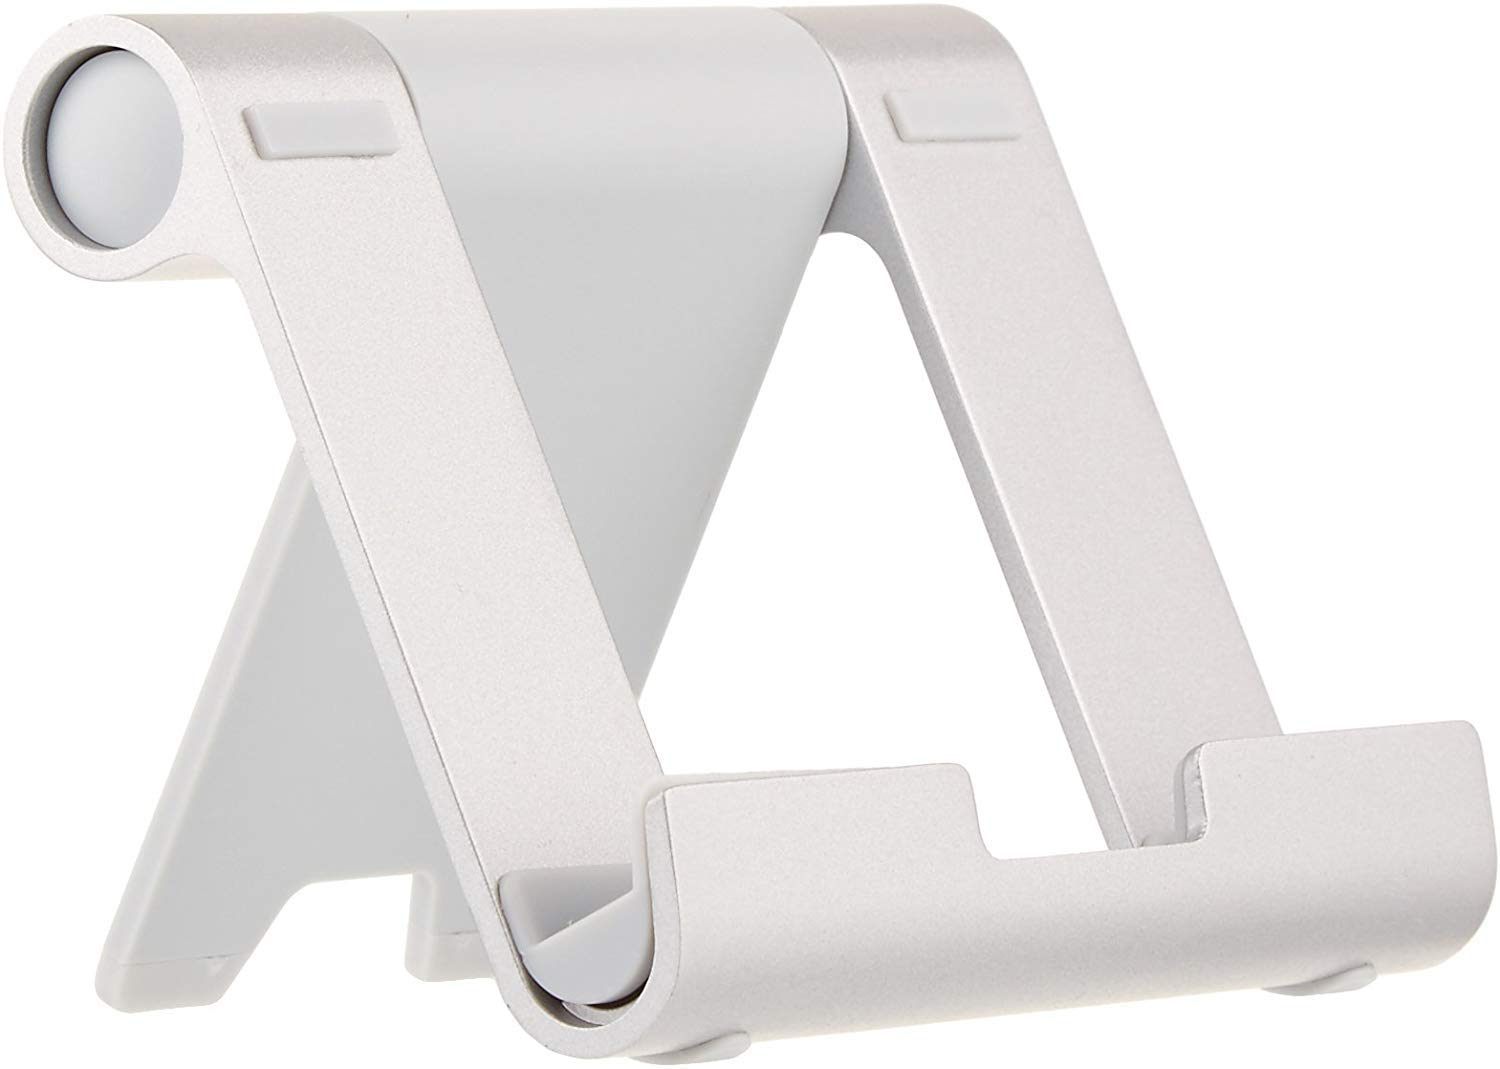 Multi-Angle Portable Mobile Stand for Phones and Tablets